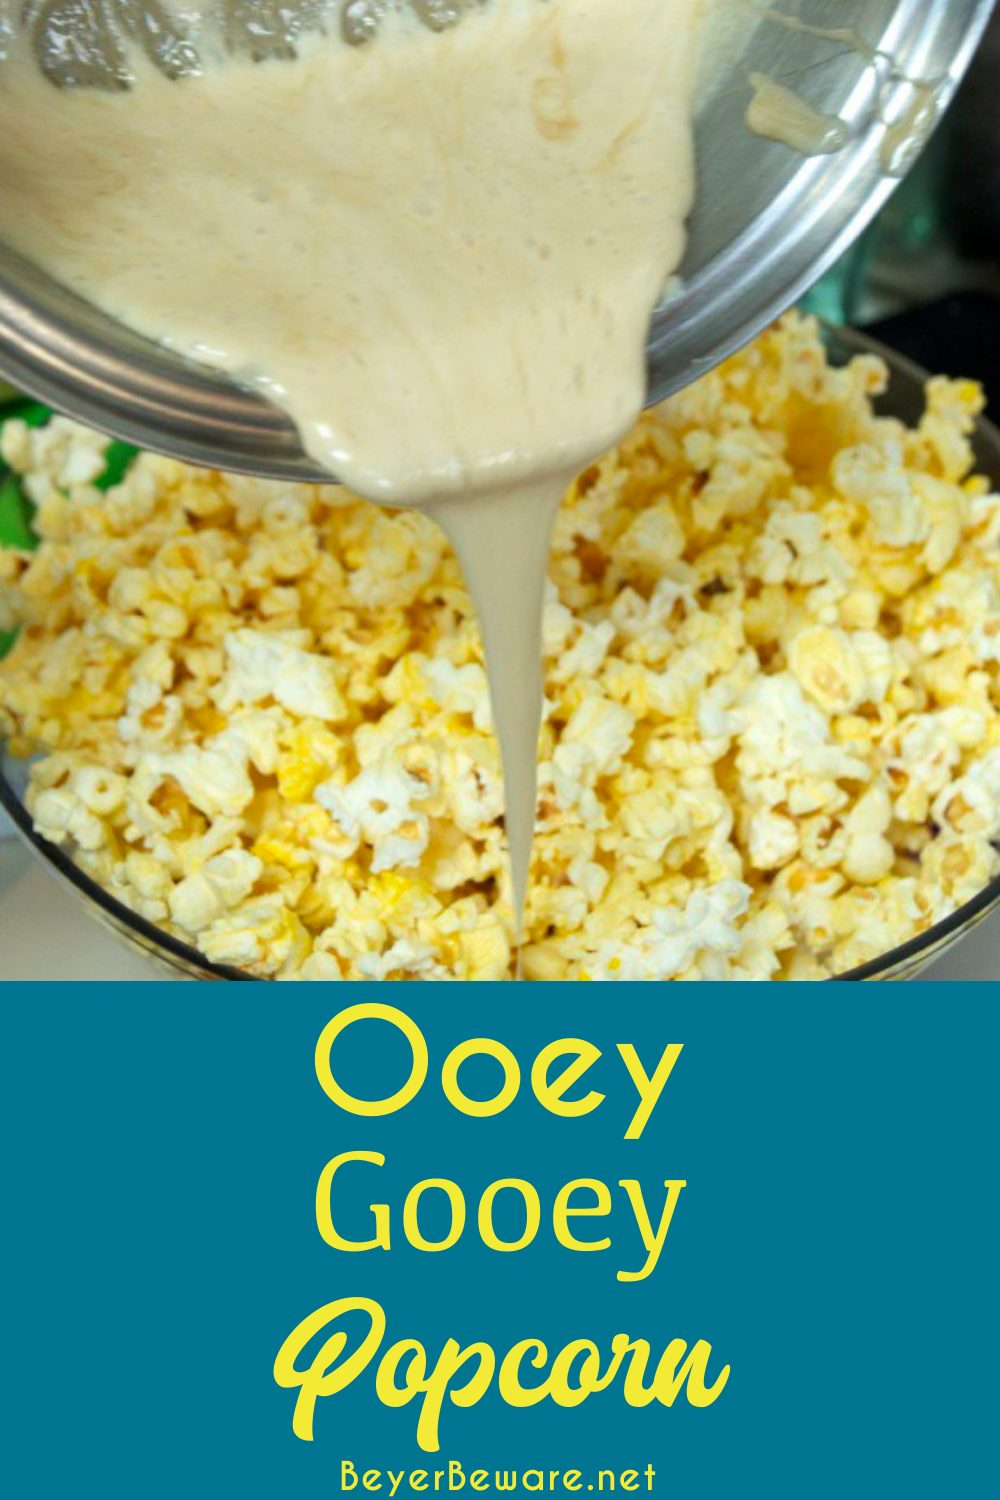 Ooey-Gooey Popcorn is made with marshmallow cream, theater popcorn, and more butter for a sweet and salty marshmallow popcorn snack.